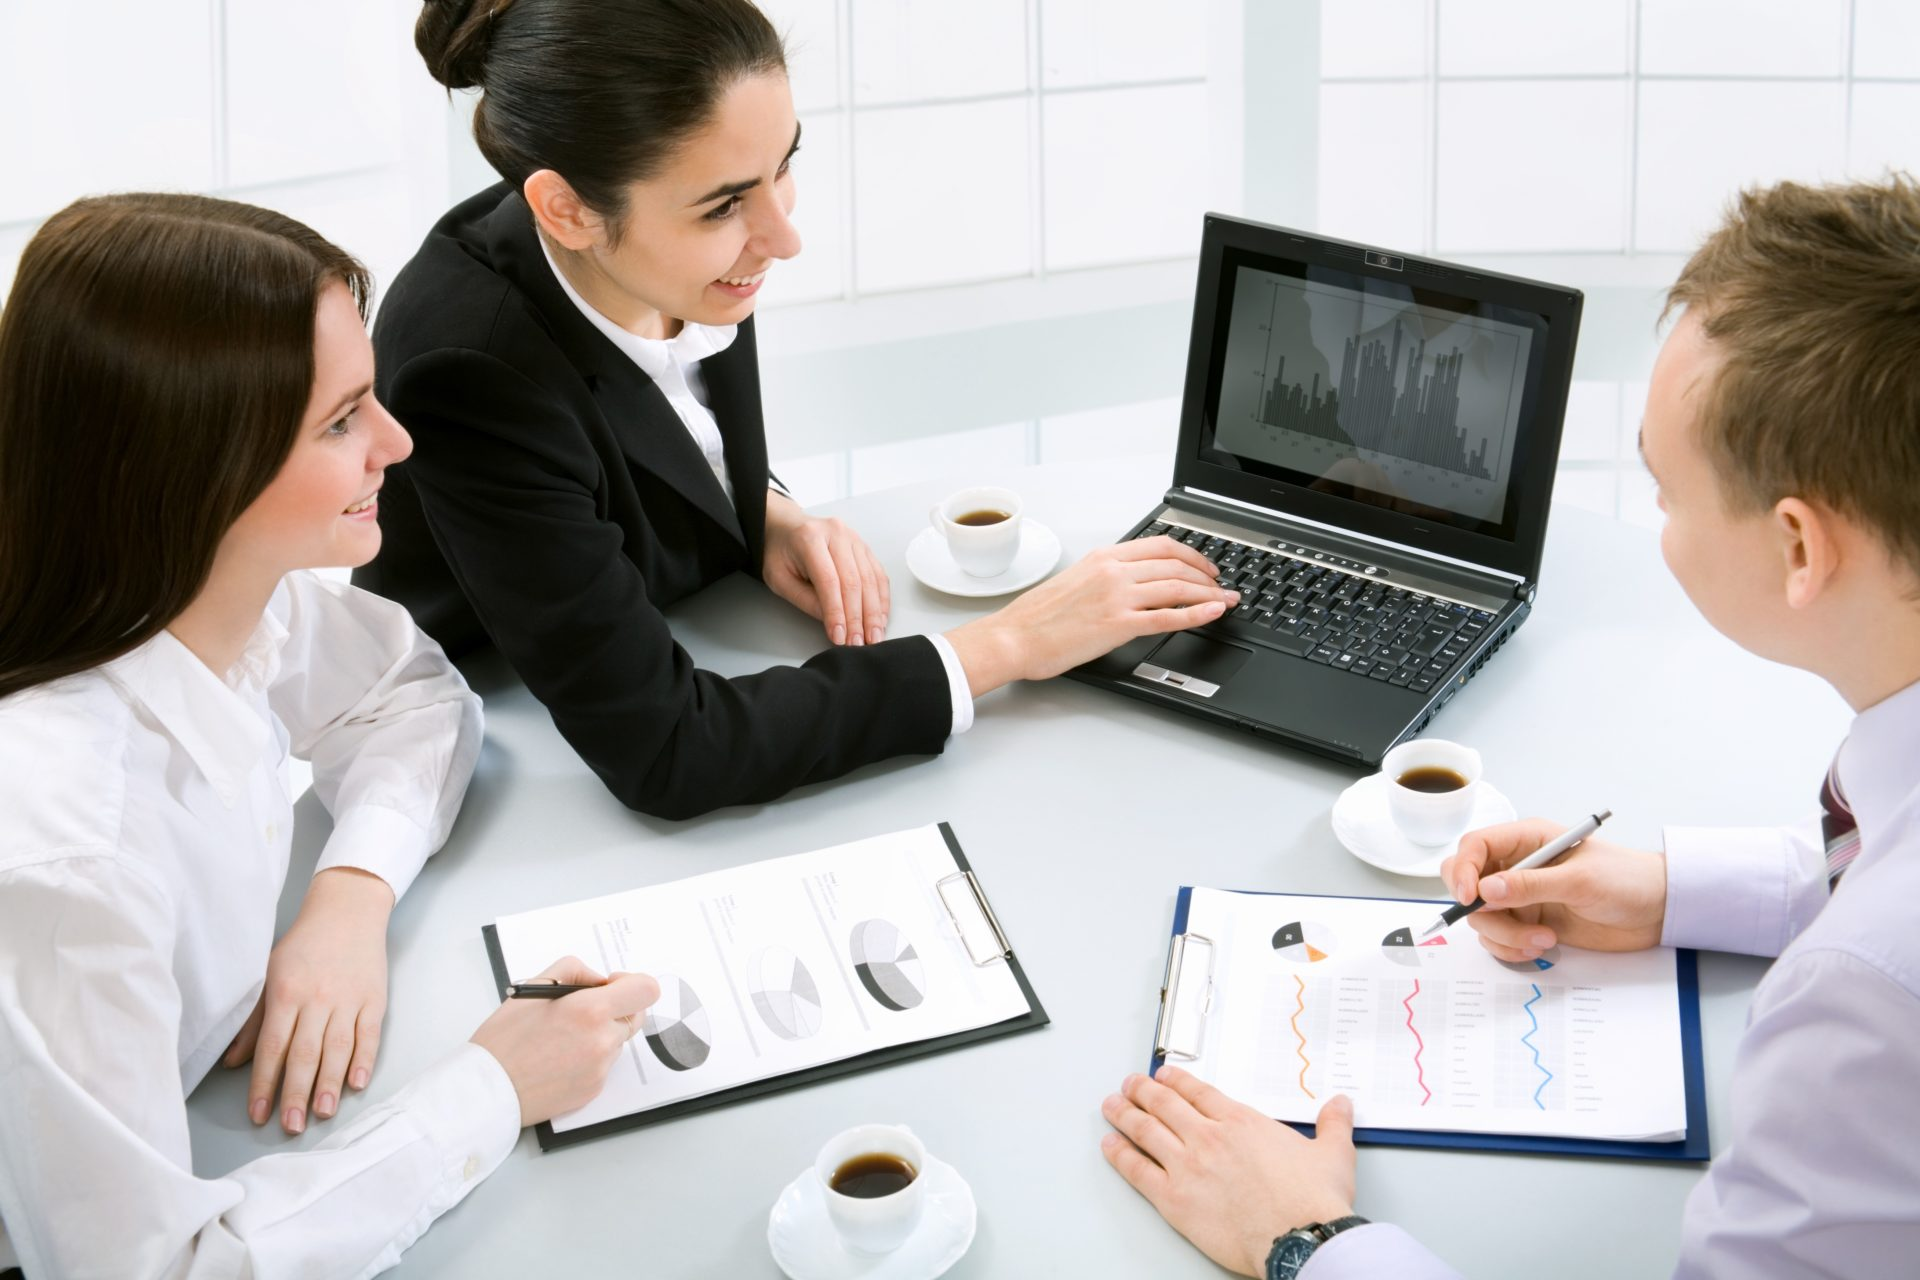 Permanent Placement Meeting Planners